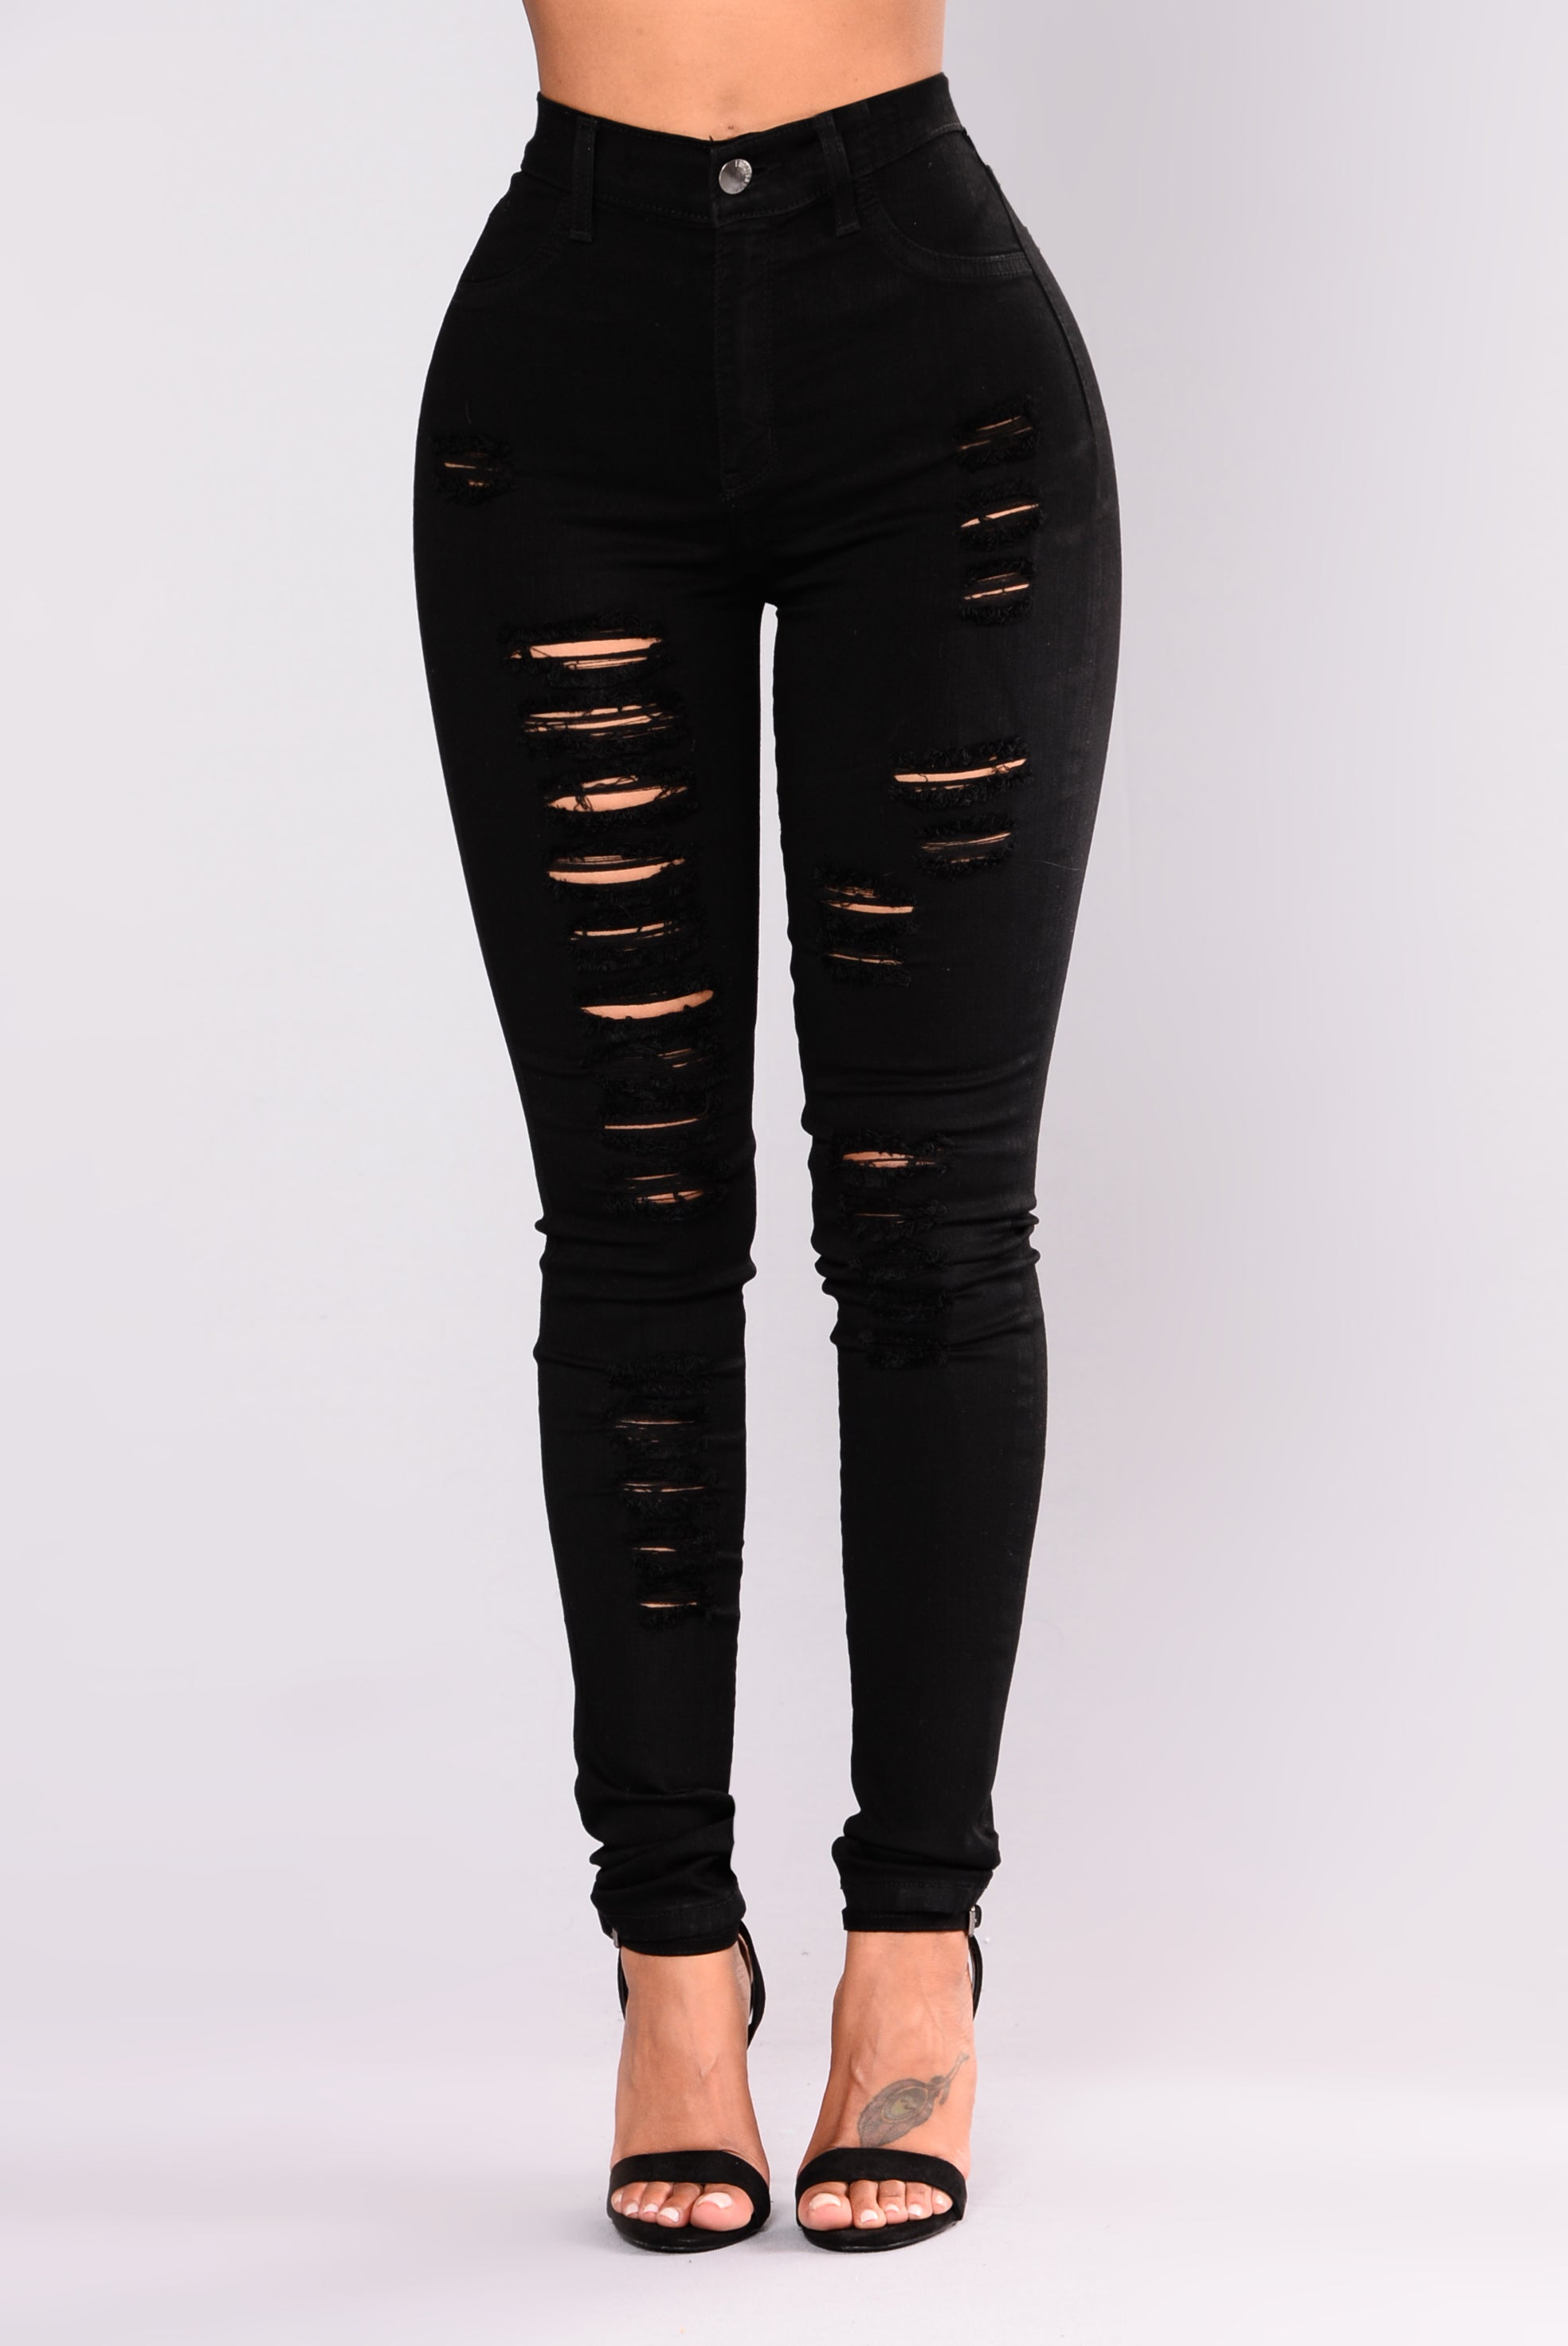 Whether you're looking for black ripped jeans, destroyed boyfriend jeans, or distressed mom jeans, we've got you covered. Distressed jeans for women are available with a variety of options. From low rise to super high rise, you can find distressed and destroyed jeans to suit any style.